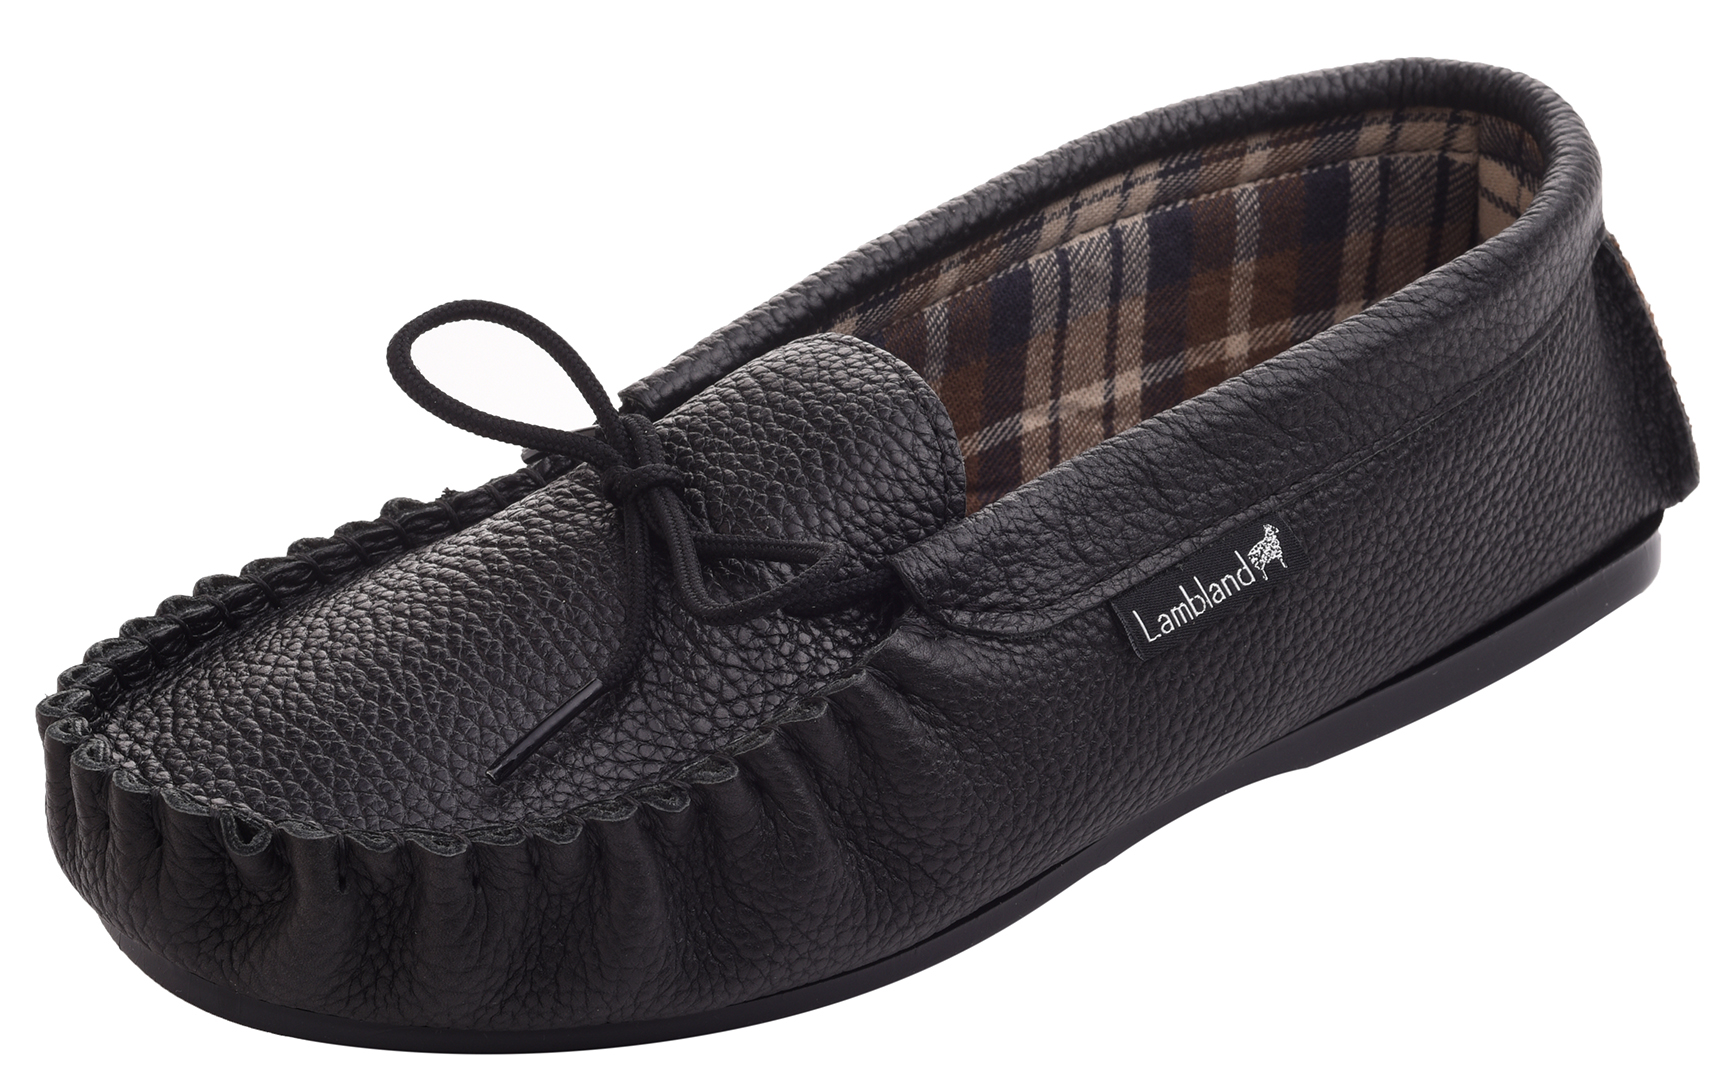 Leather-Moccasin-Slippers-UK-Made-for-Men-and-Ladies-Cotton-Lining-by-Lambland thumbnail 3